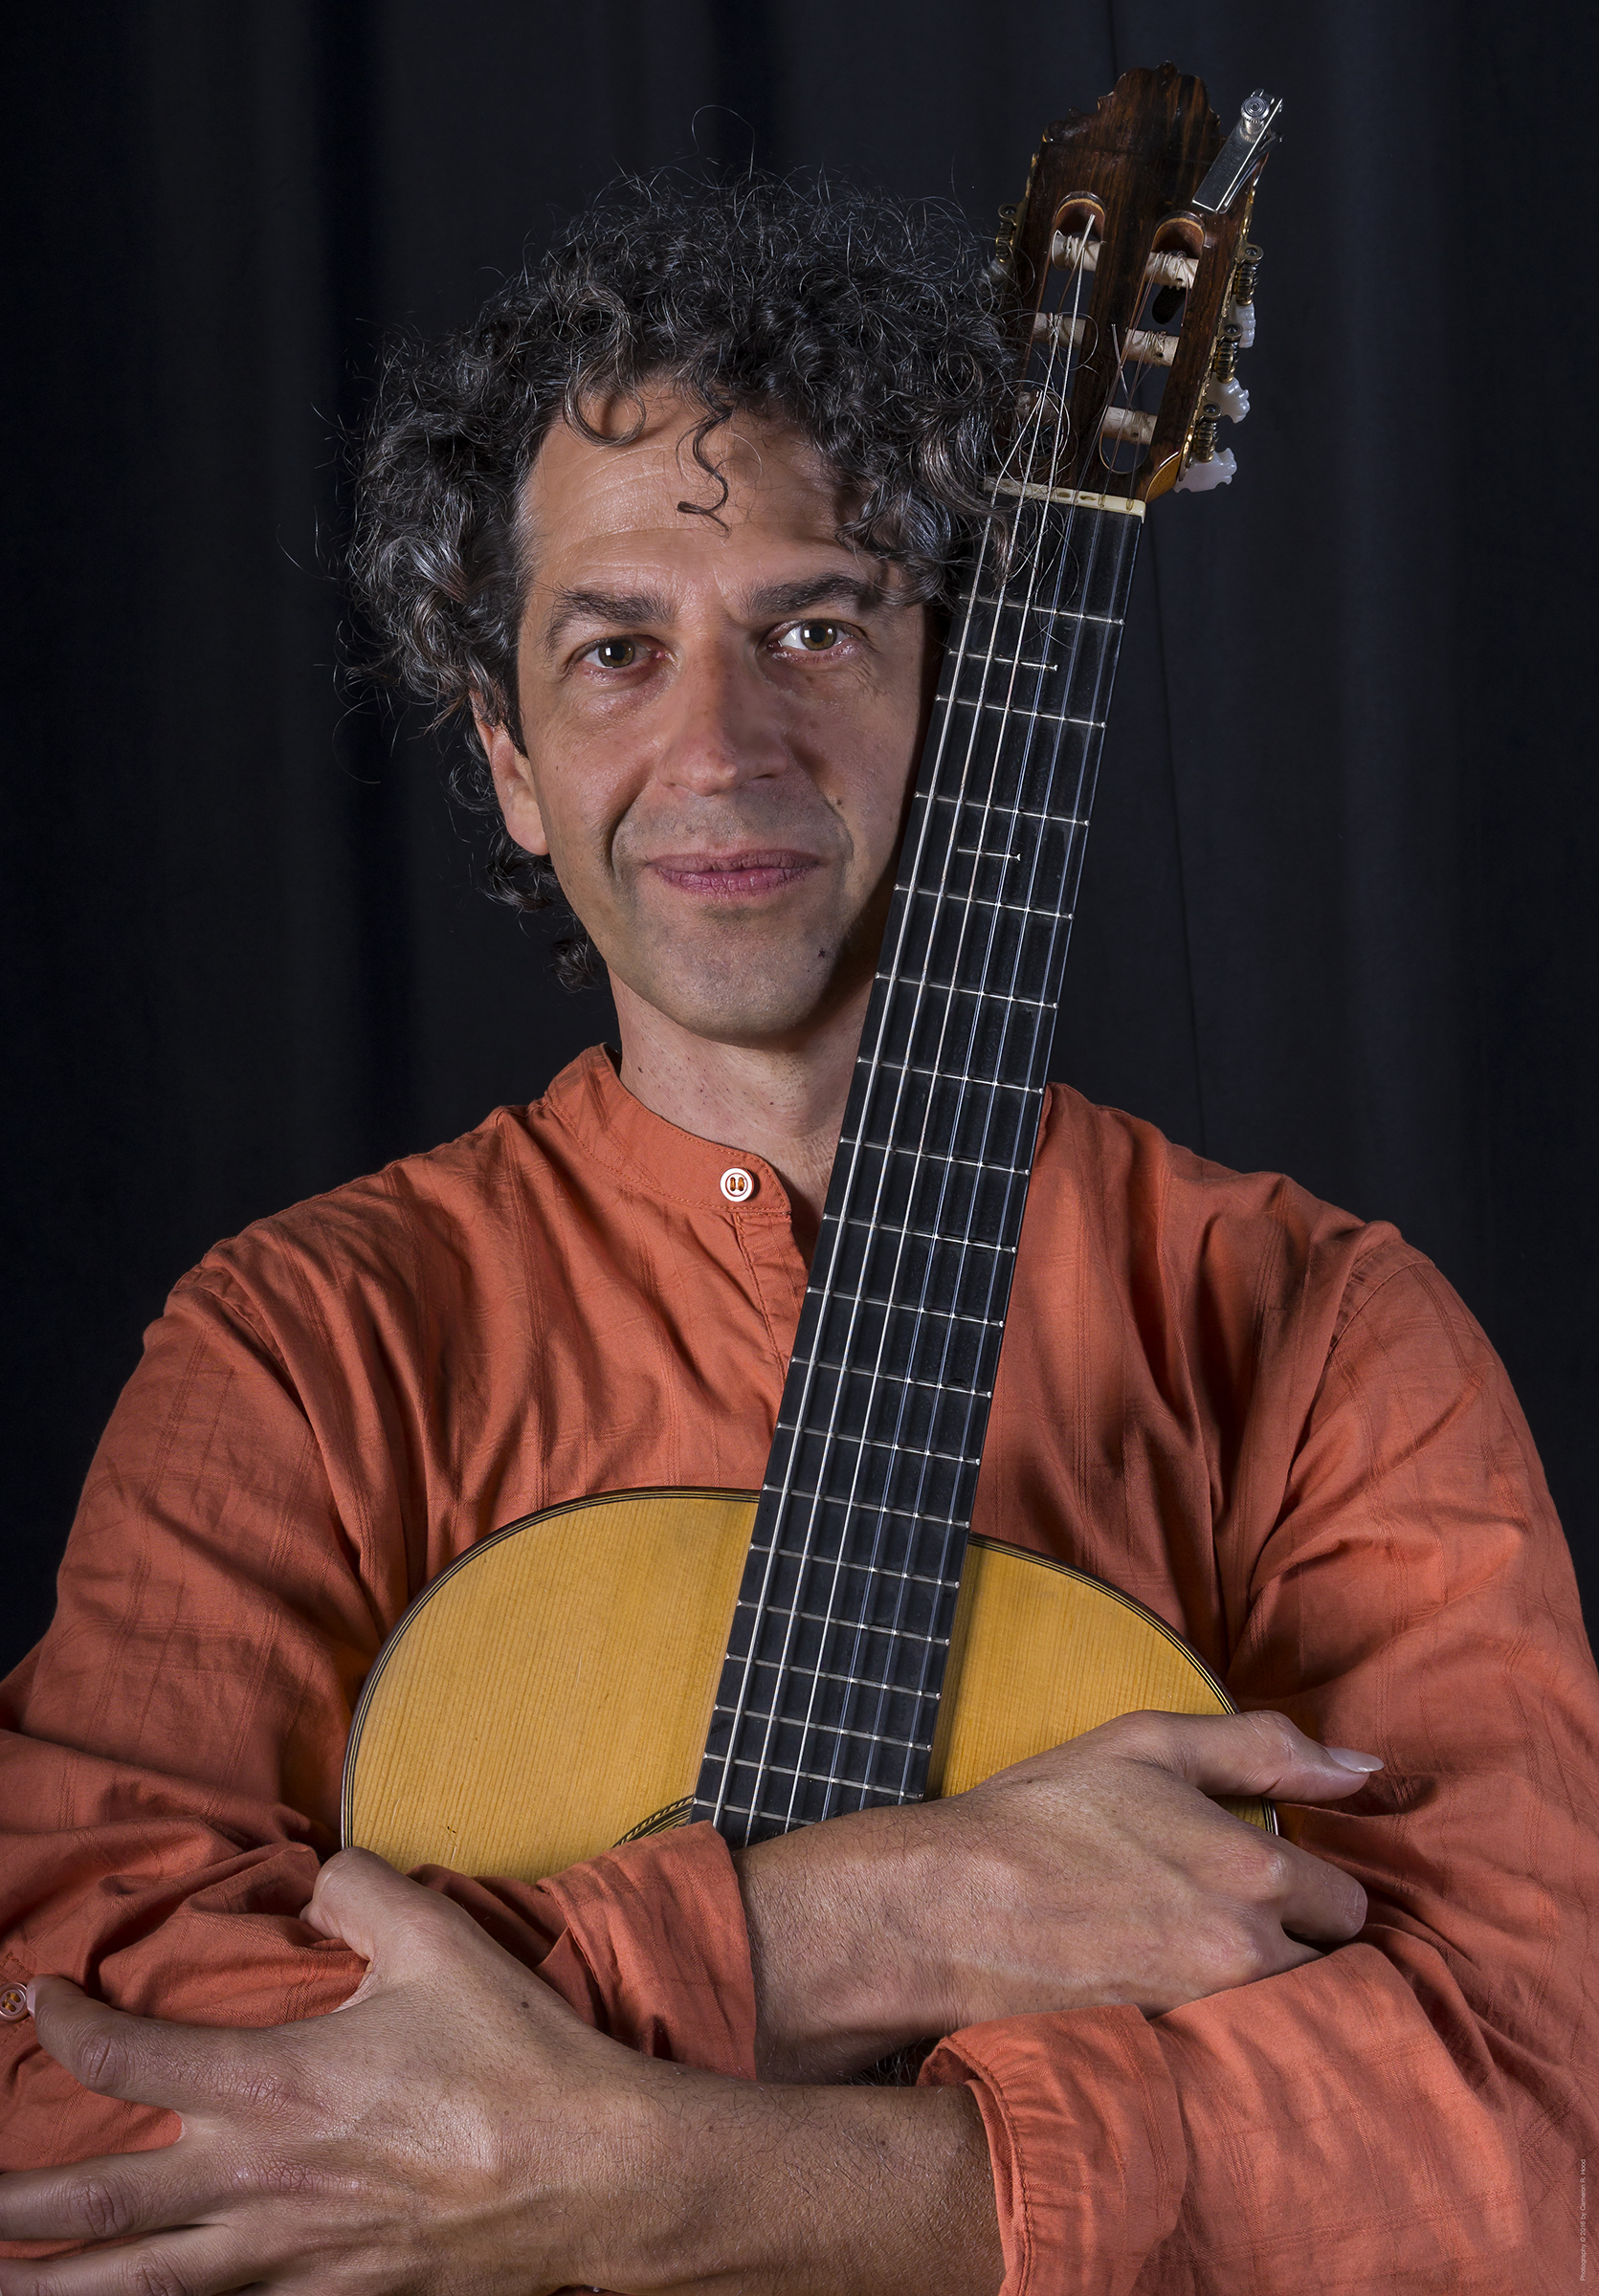 musician with classical guitar